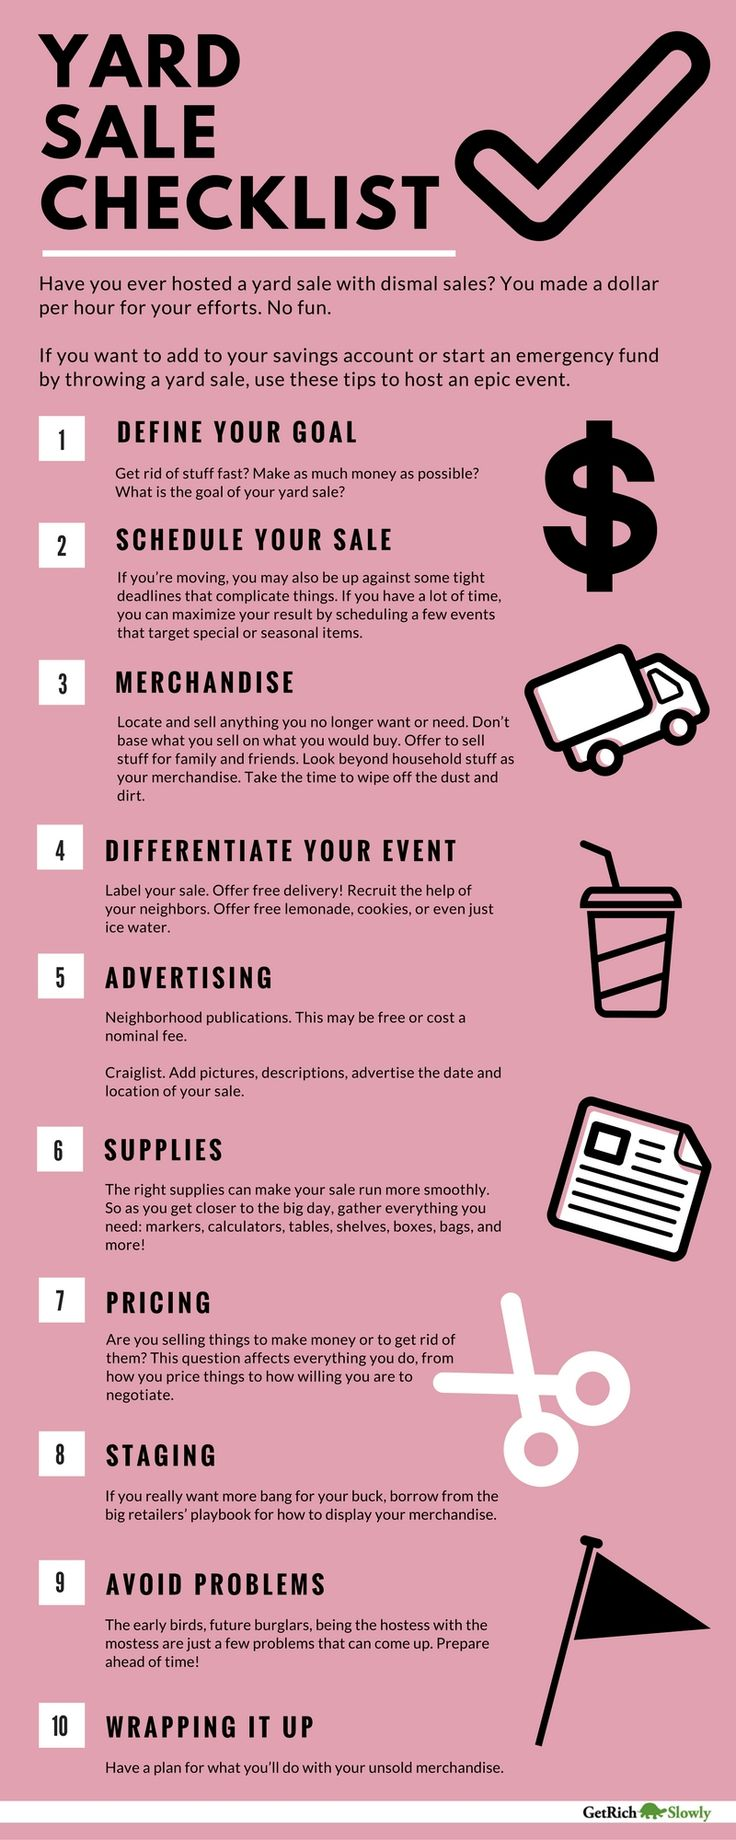 Learn how to host the very best garage sale ever - Learn How To Host The Very Best Garage Sale Ever Best Yard Sale Checklist The Download